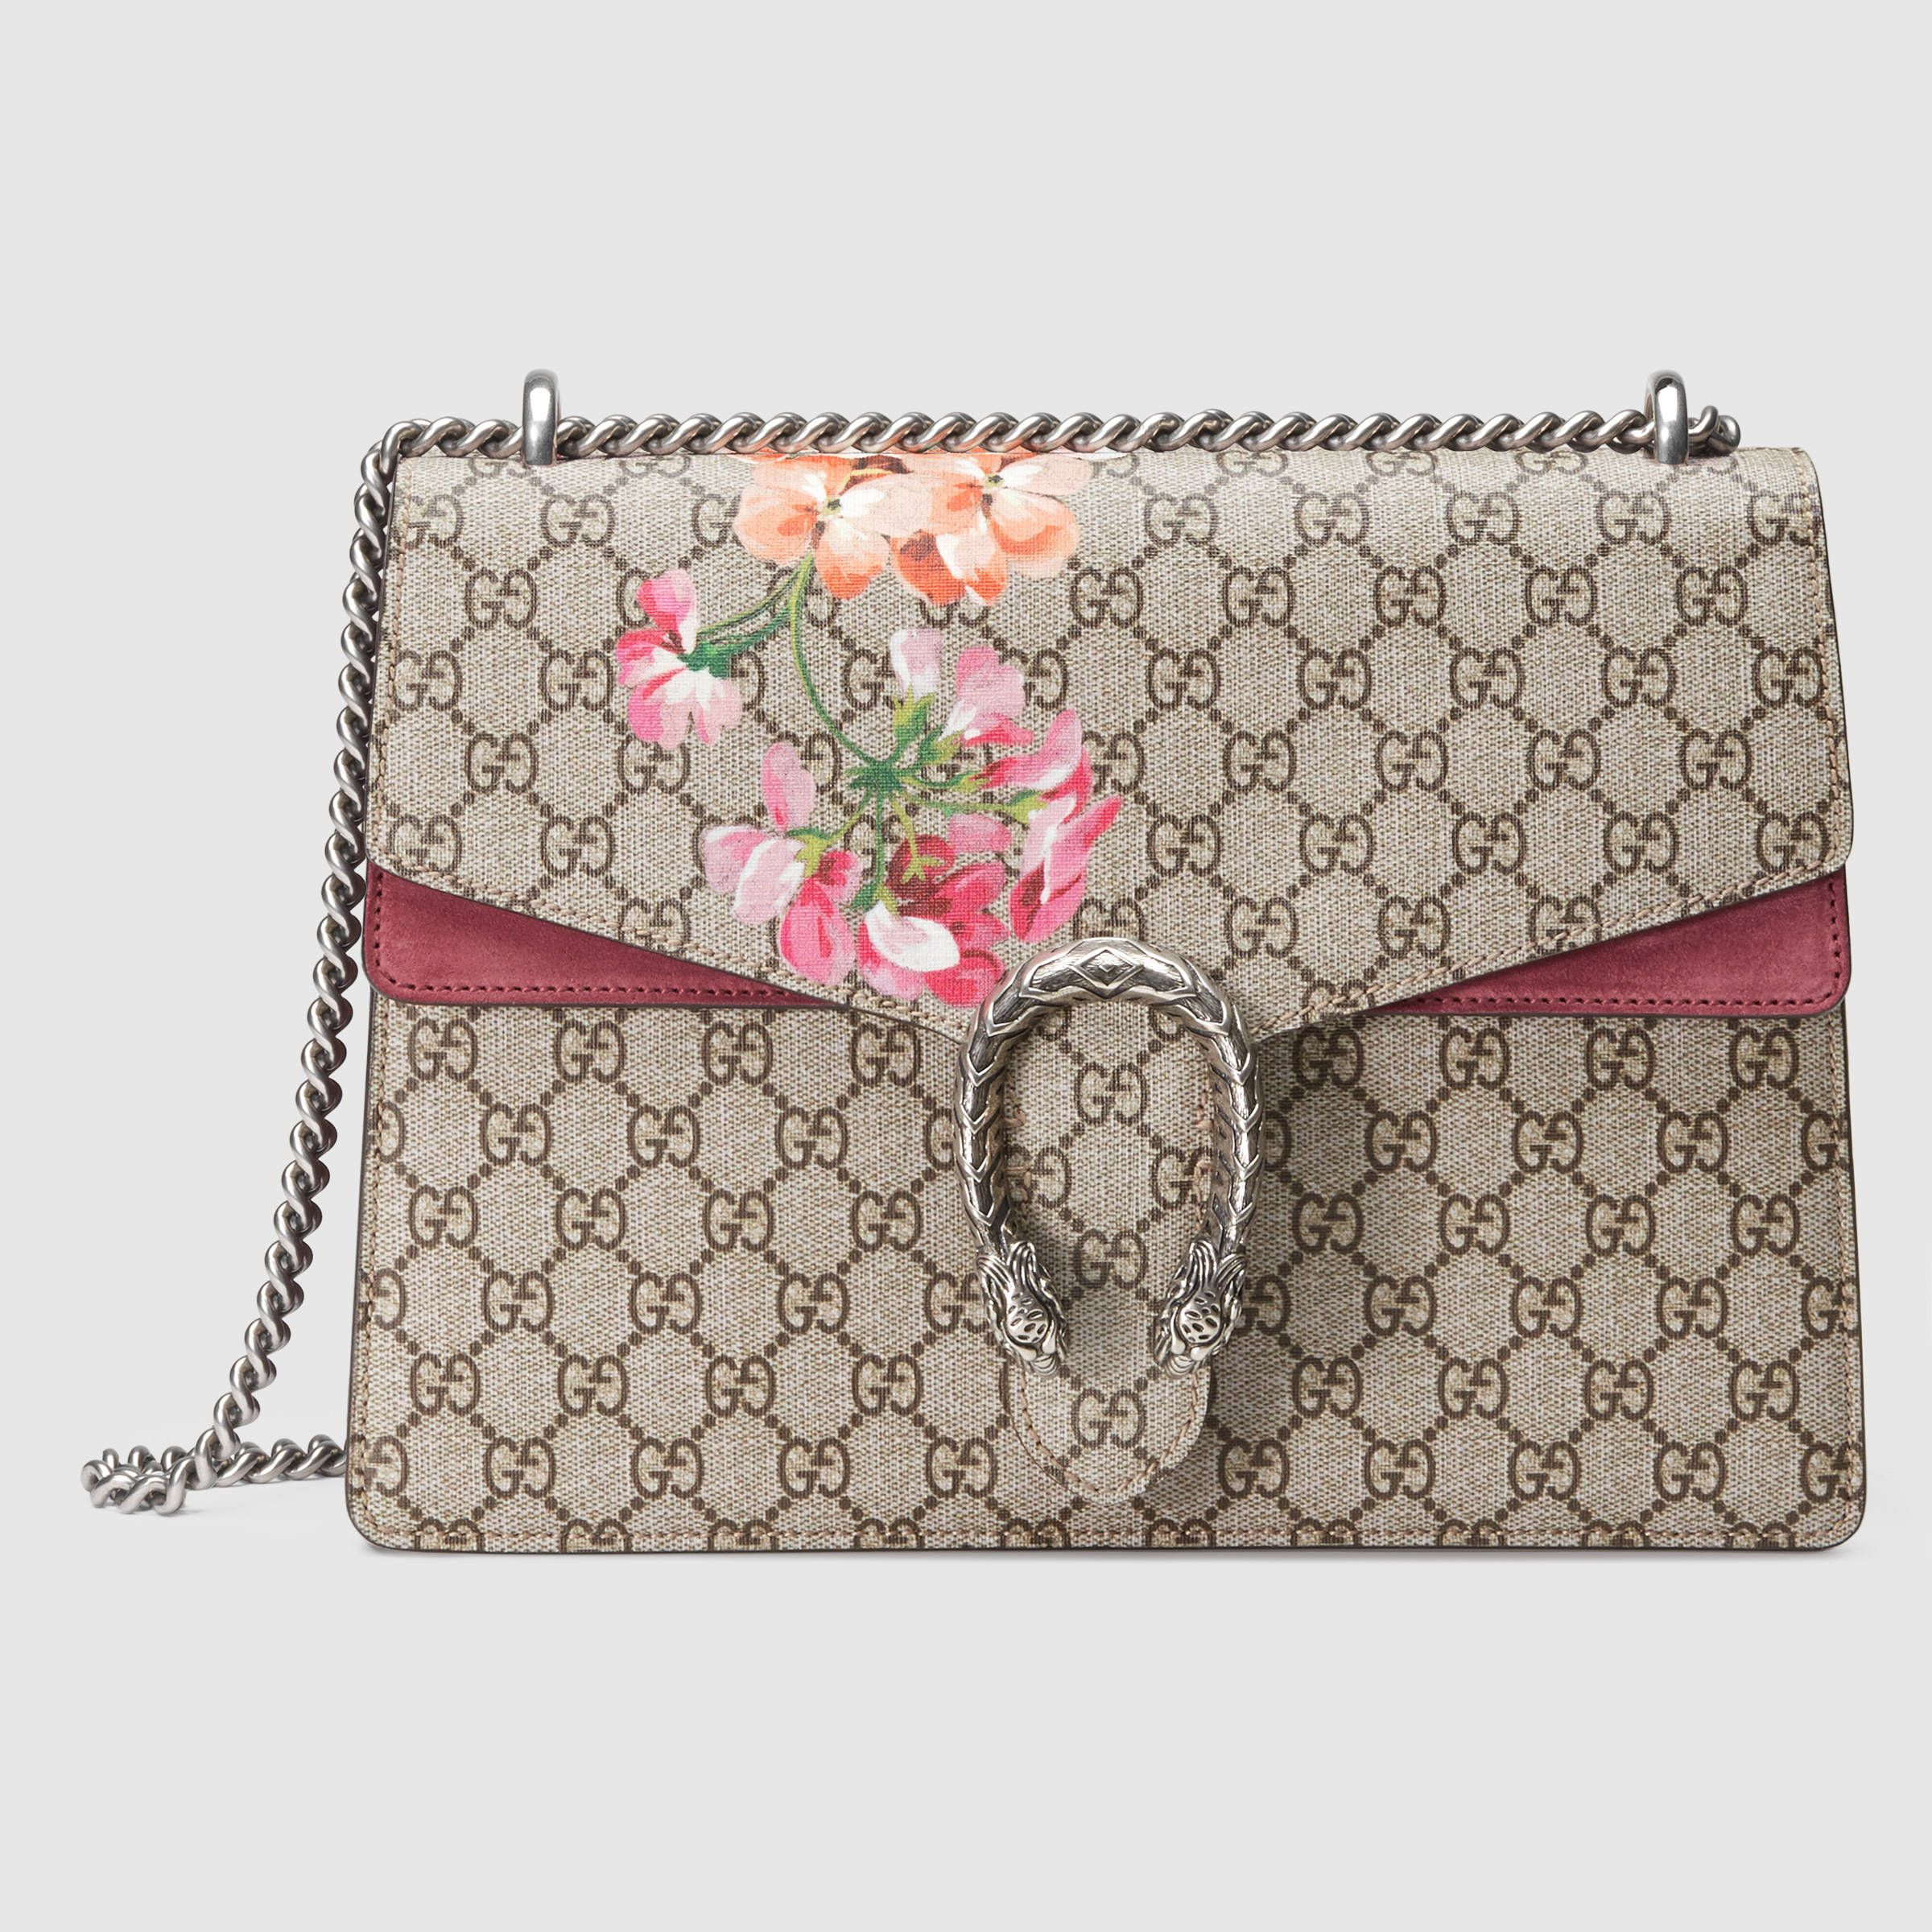 632aea5e Dionysus medium GG Blooms shoulder bag | All about the bag! | Gucci ...